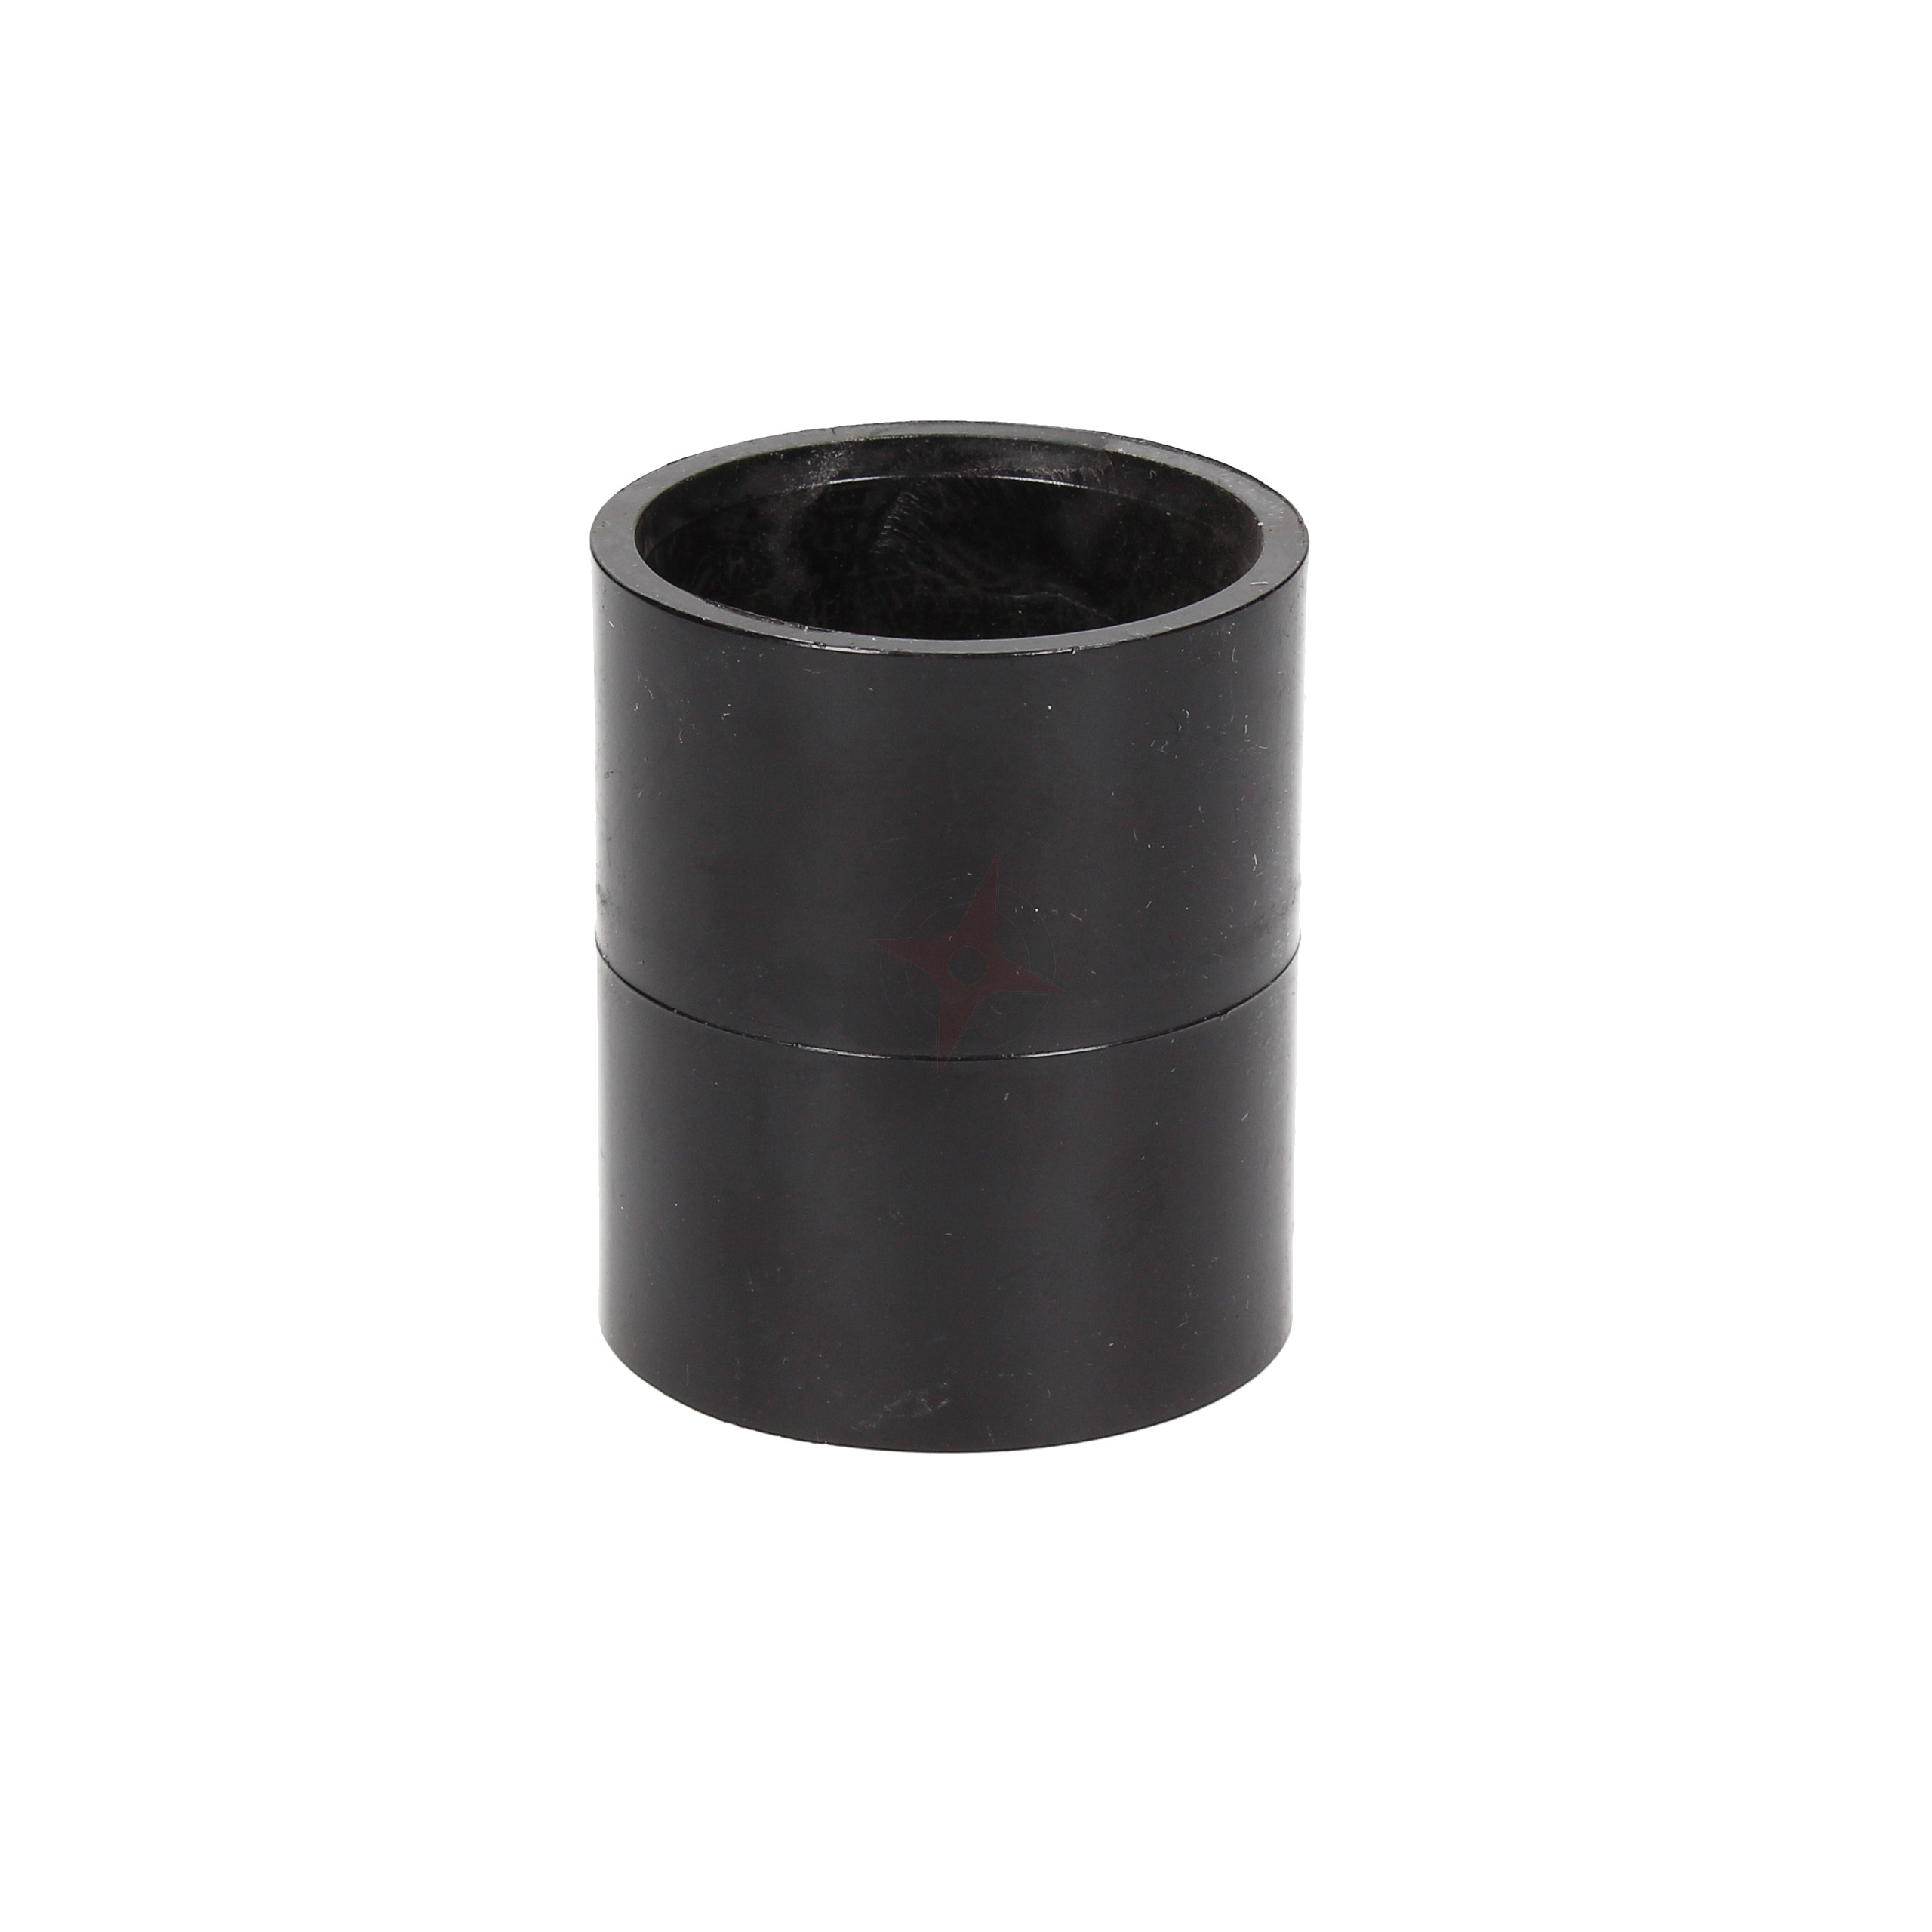 Black 36mm Solvent Waste Straight Coupler